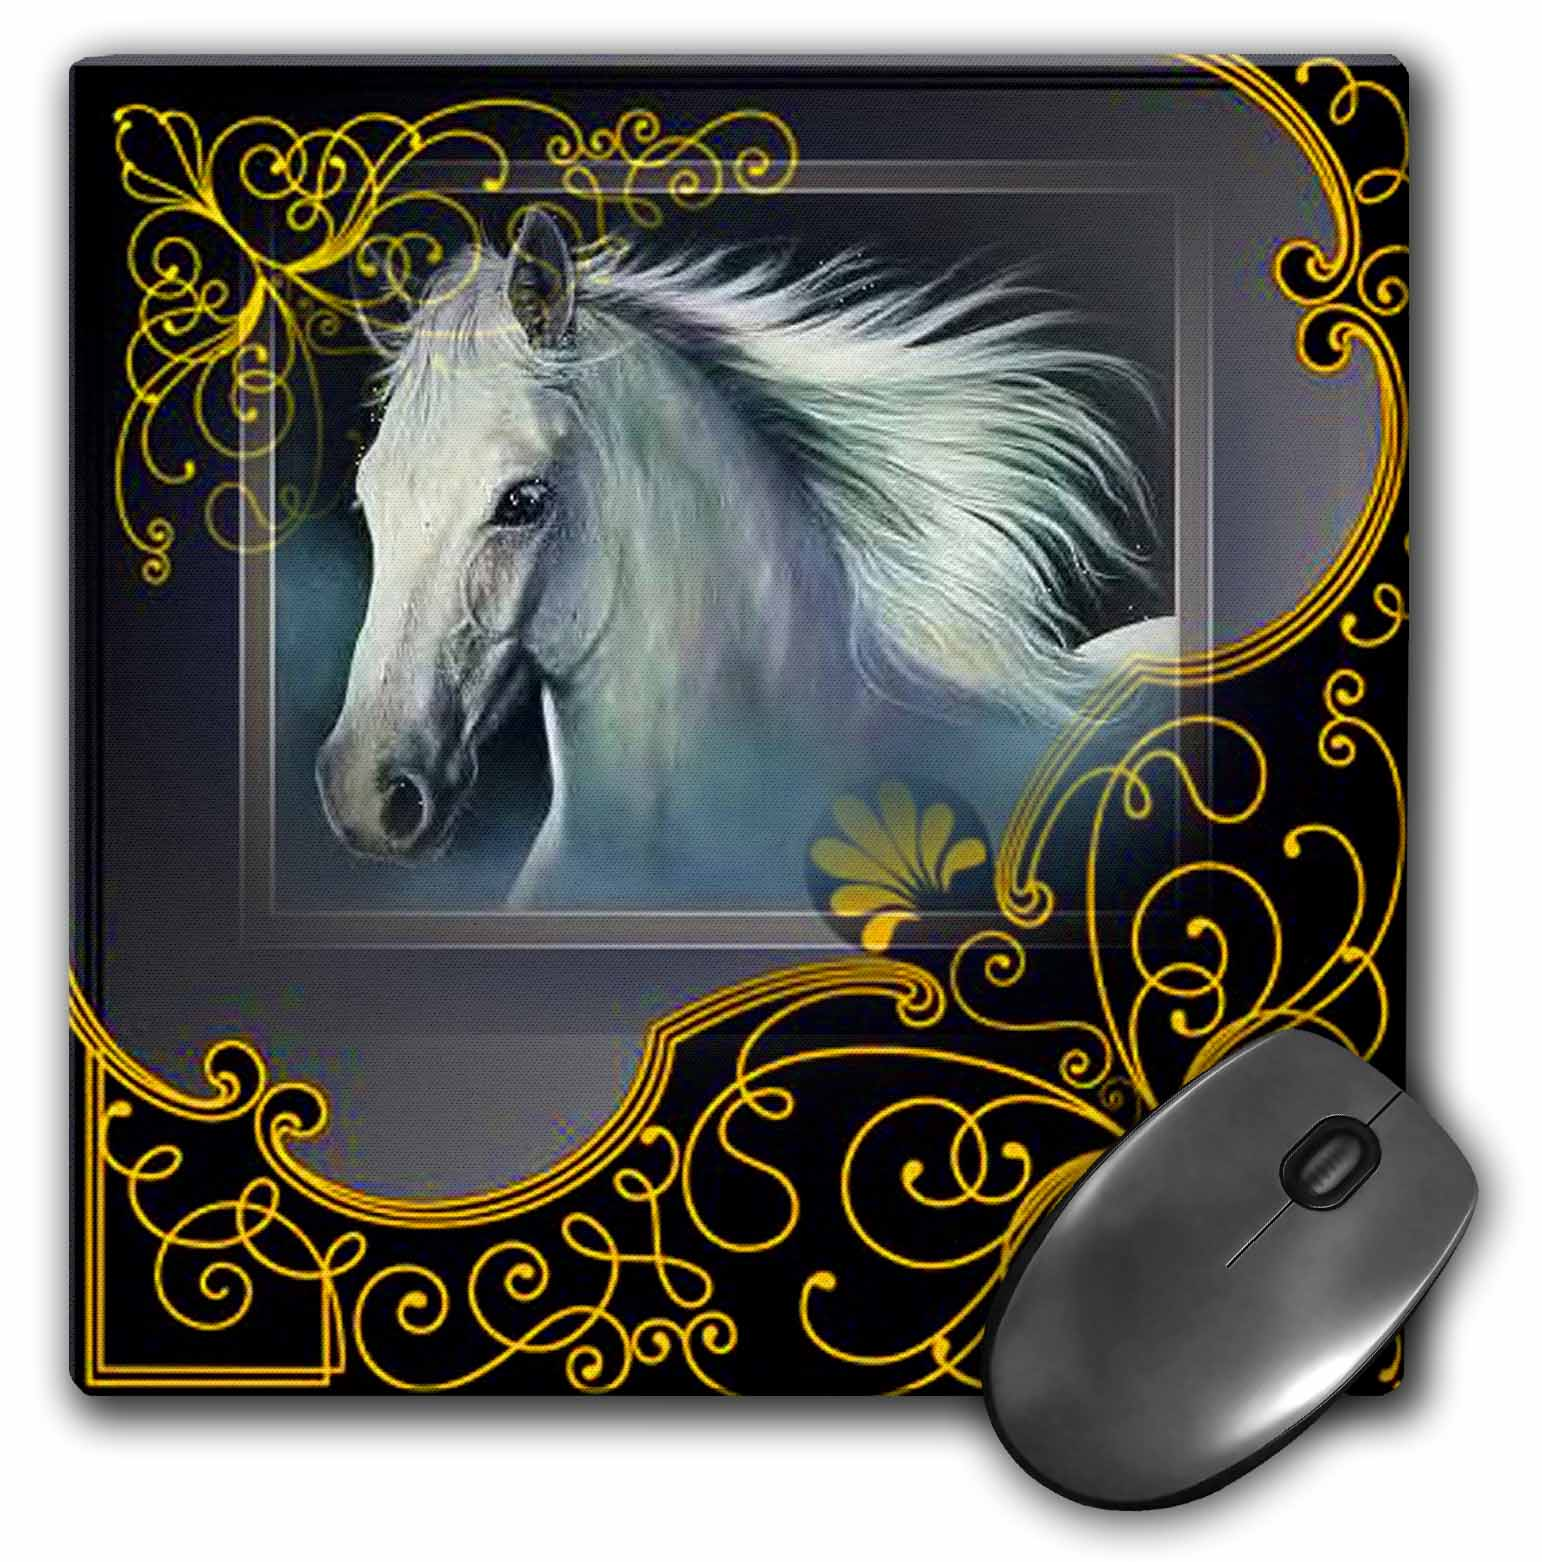 3dRose White Stallion in a beautiful black frame with gold accents, Mouse Pad, 8 by 8 inches